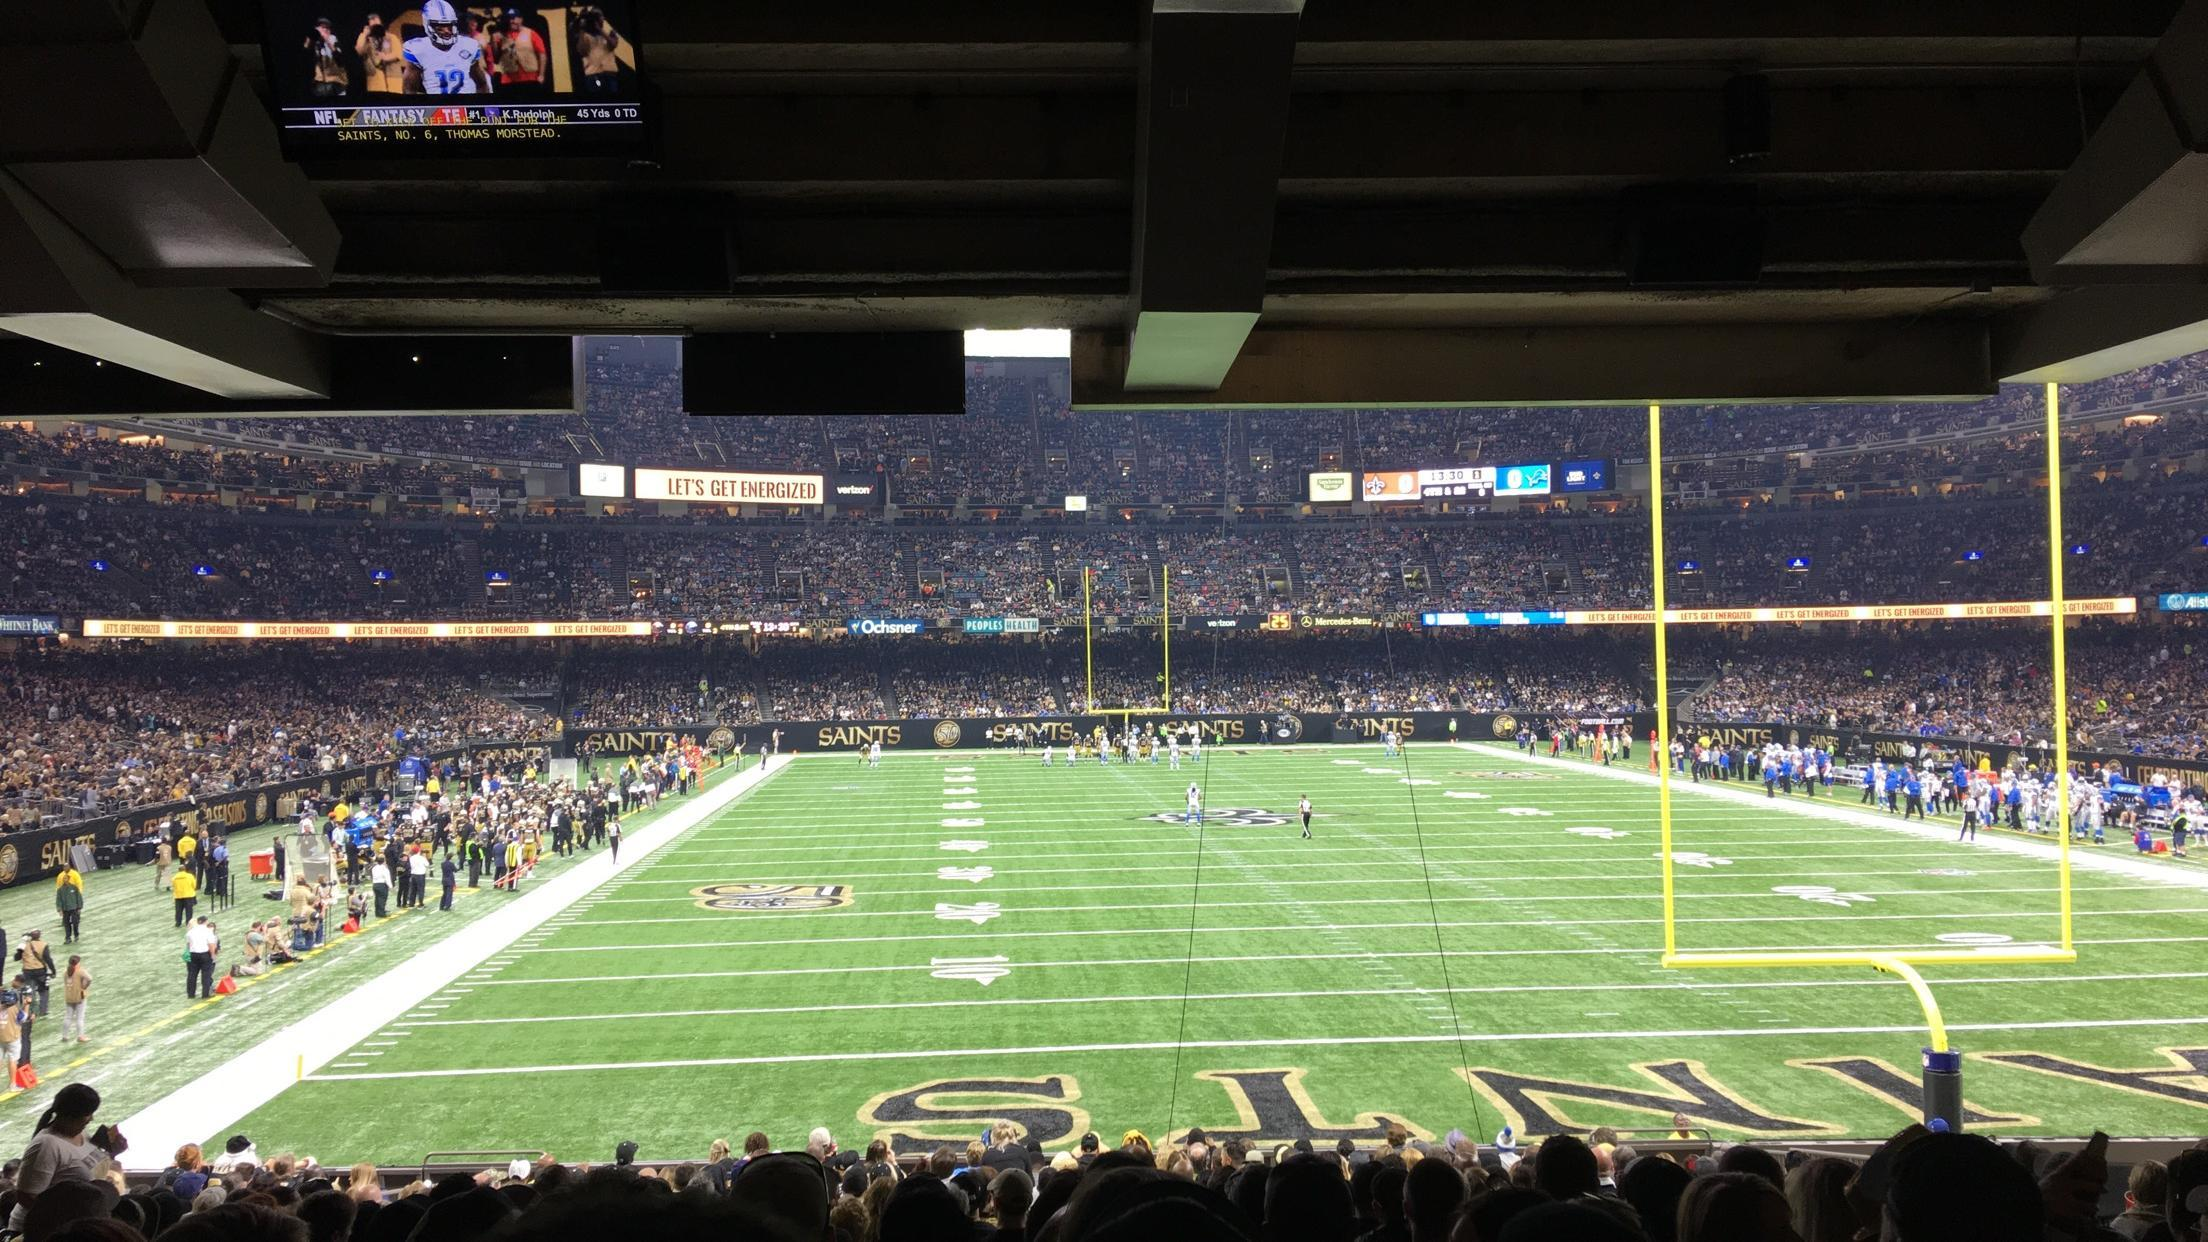 Mercedes-Benz Superdome Section 129 Row 25 Seat 12